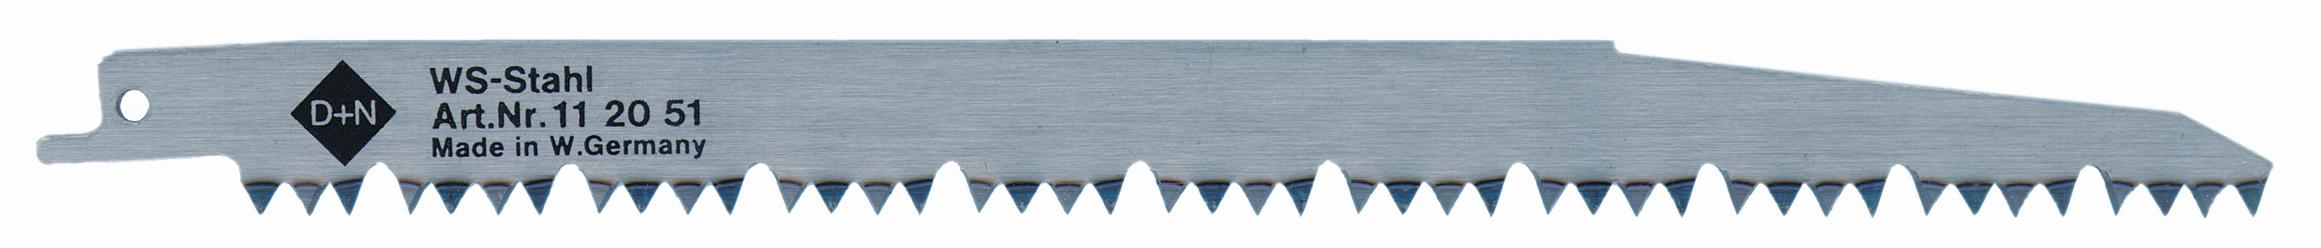 reciprocating saw blades pruning. reciprocating saw blade for all woods, fast coarse cutting, pruning trees. blades g